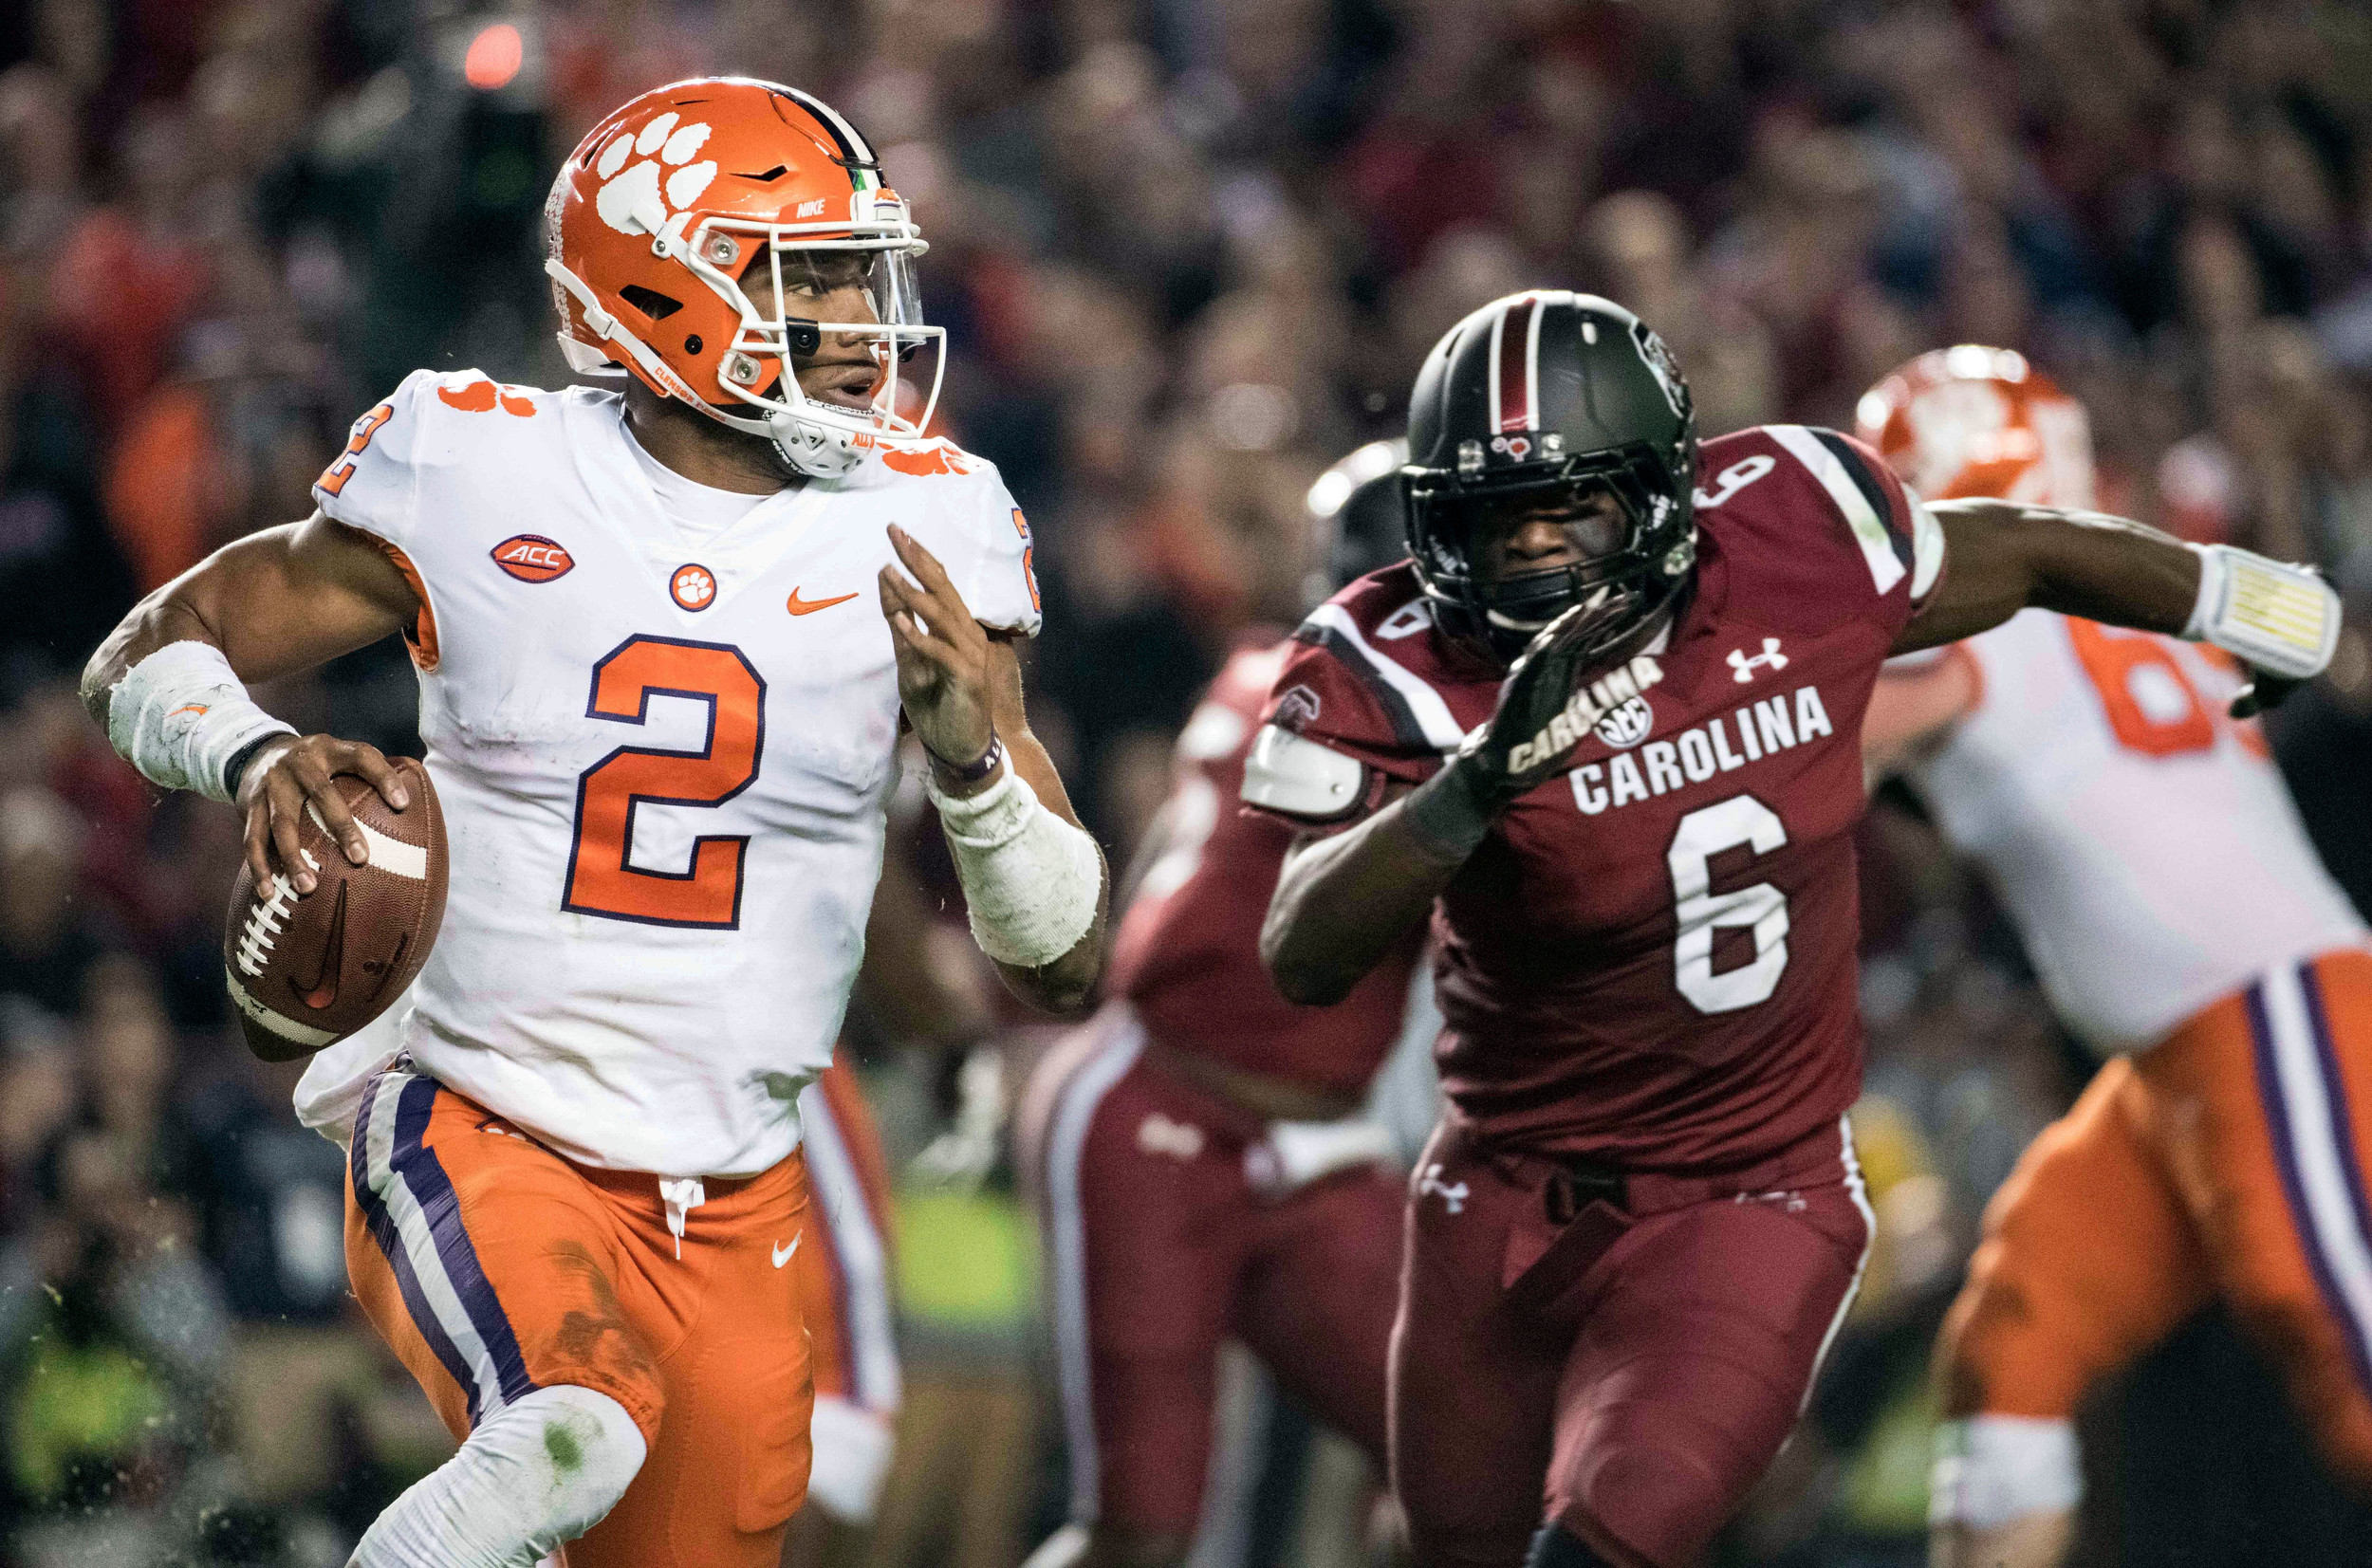 Clemson quarterback Kelly Bryant (2) took over for Deshaun Watson and has the Tigers a win away from their third straight trip to the College Football Playoff. Clemson faces Miami today in Charlotte in the Atlantic Coast Conference championship game.